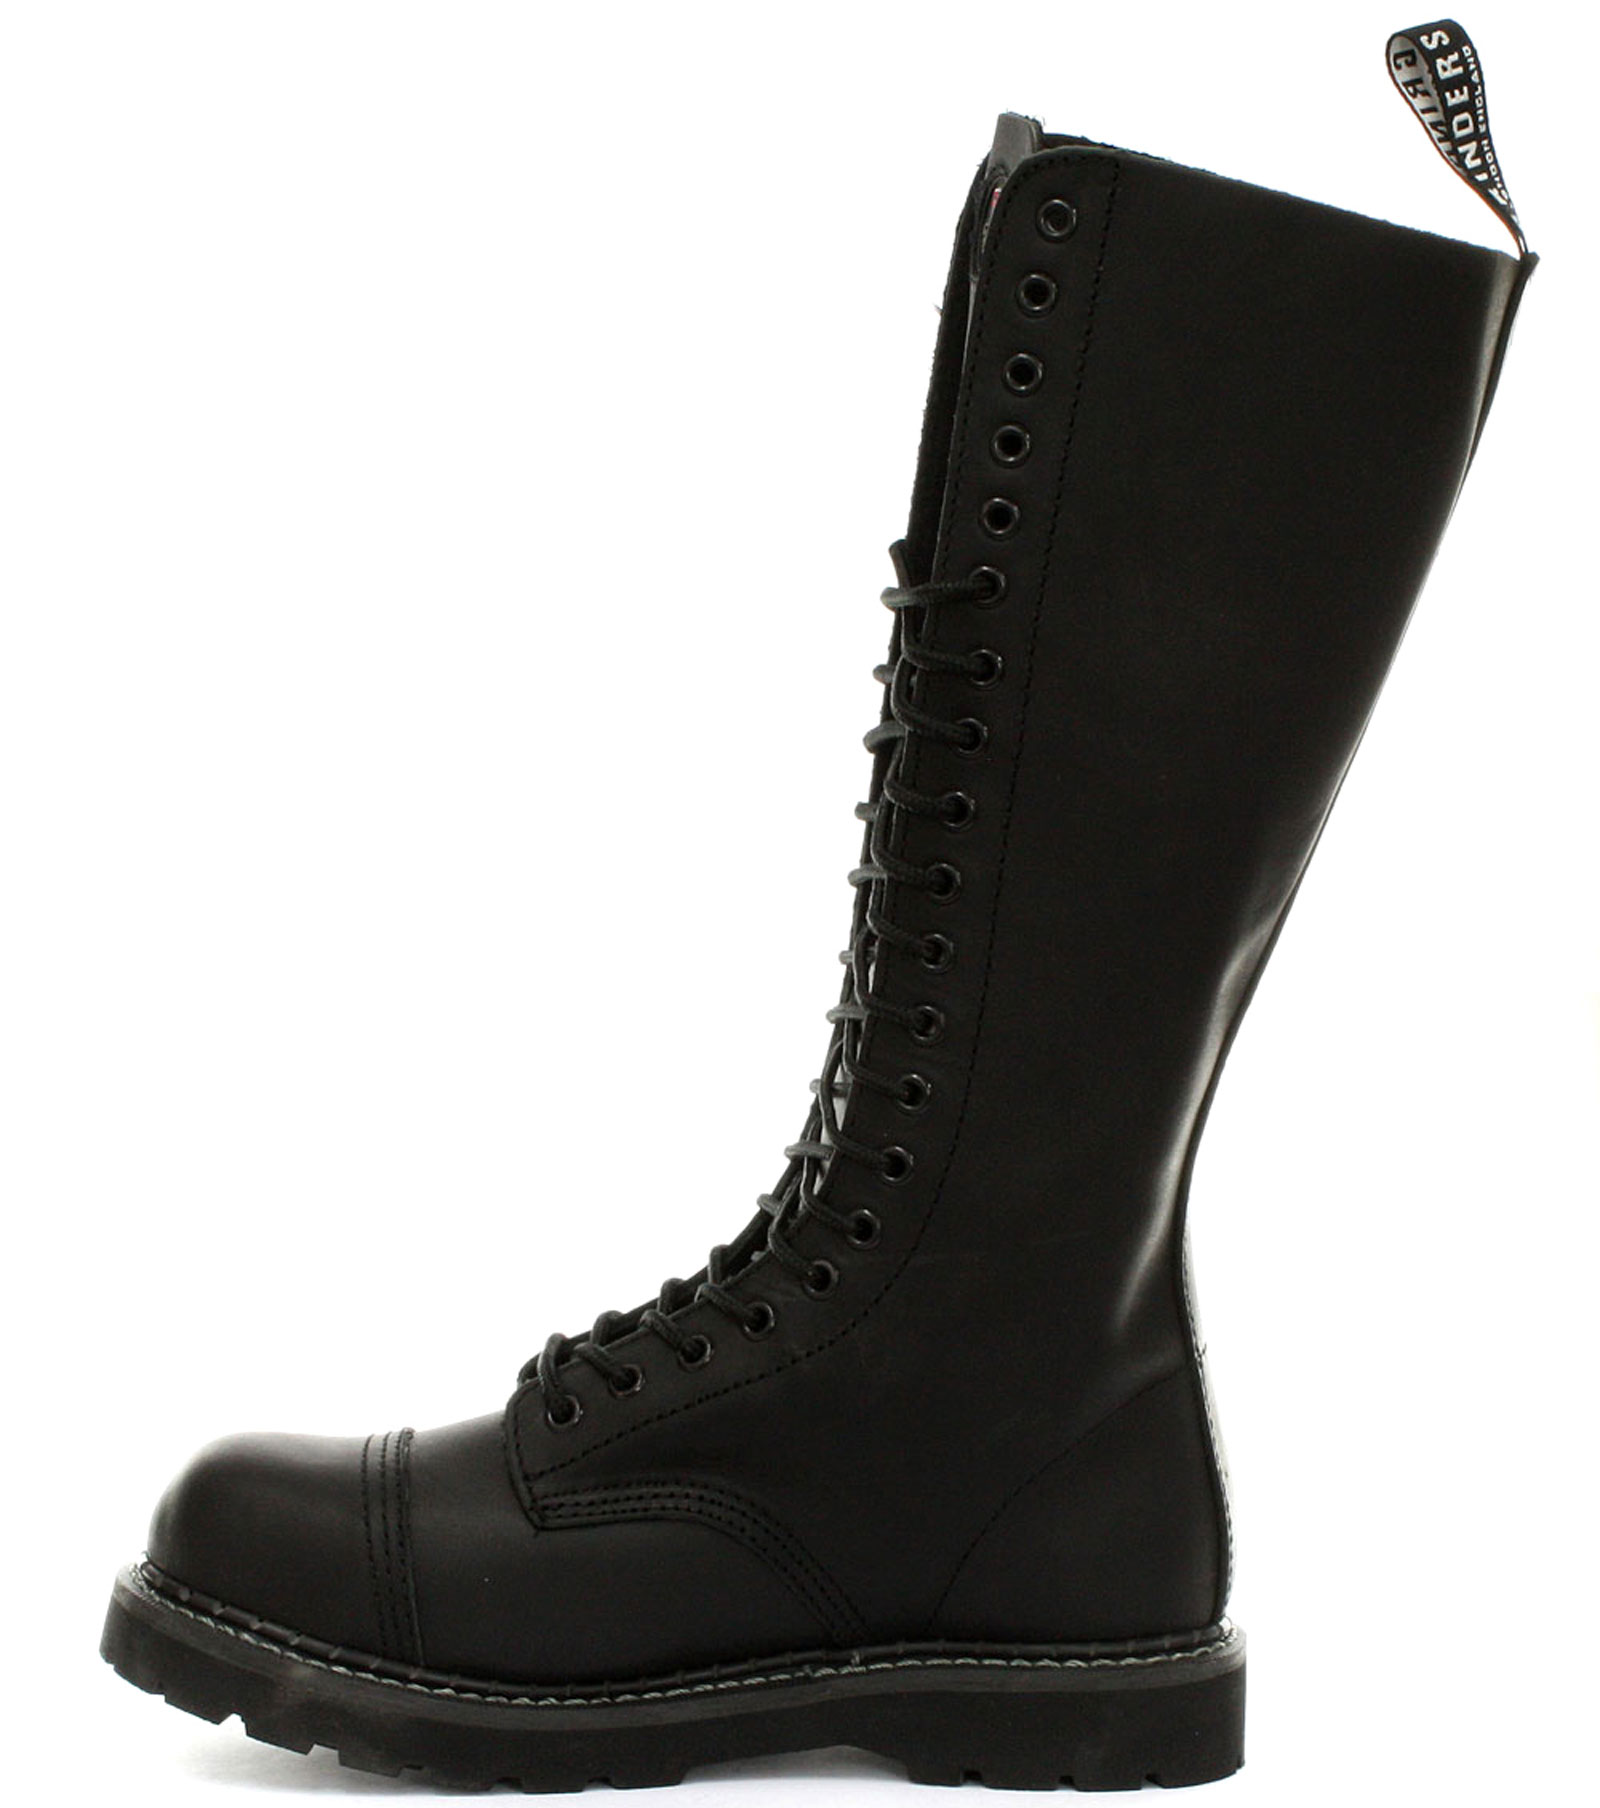 Grinders King 2015 Black Womens Safety Steel Toe Derby Boots ALL SIZES